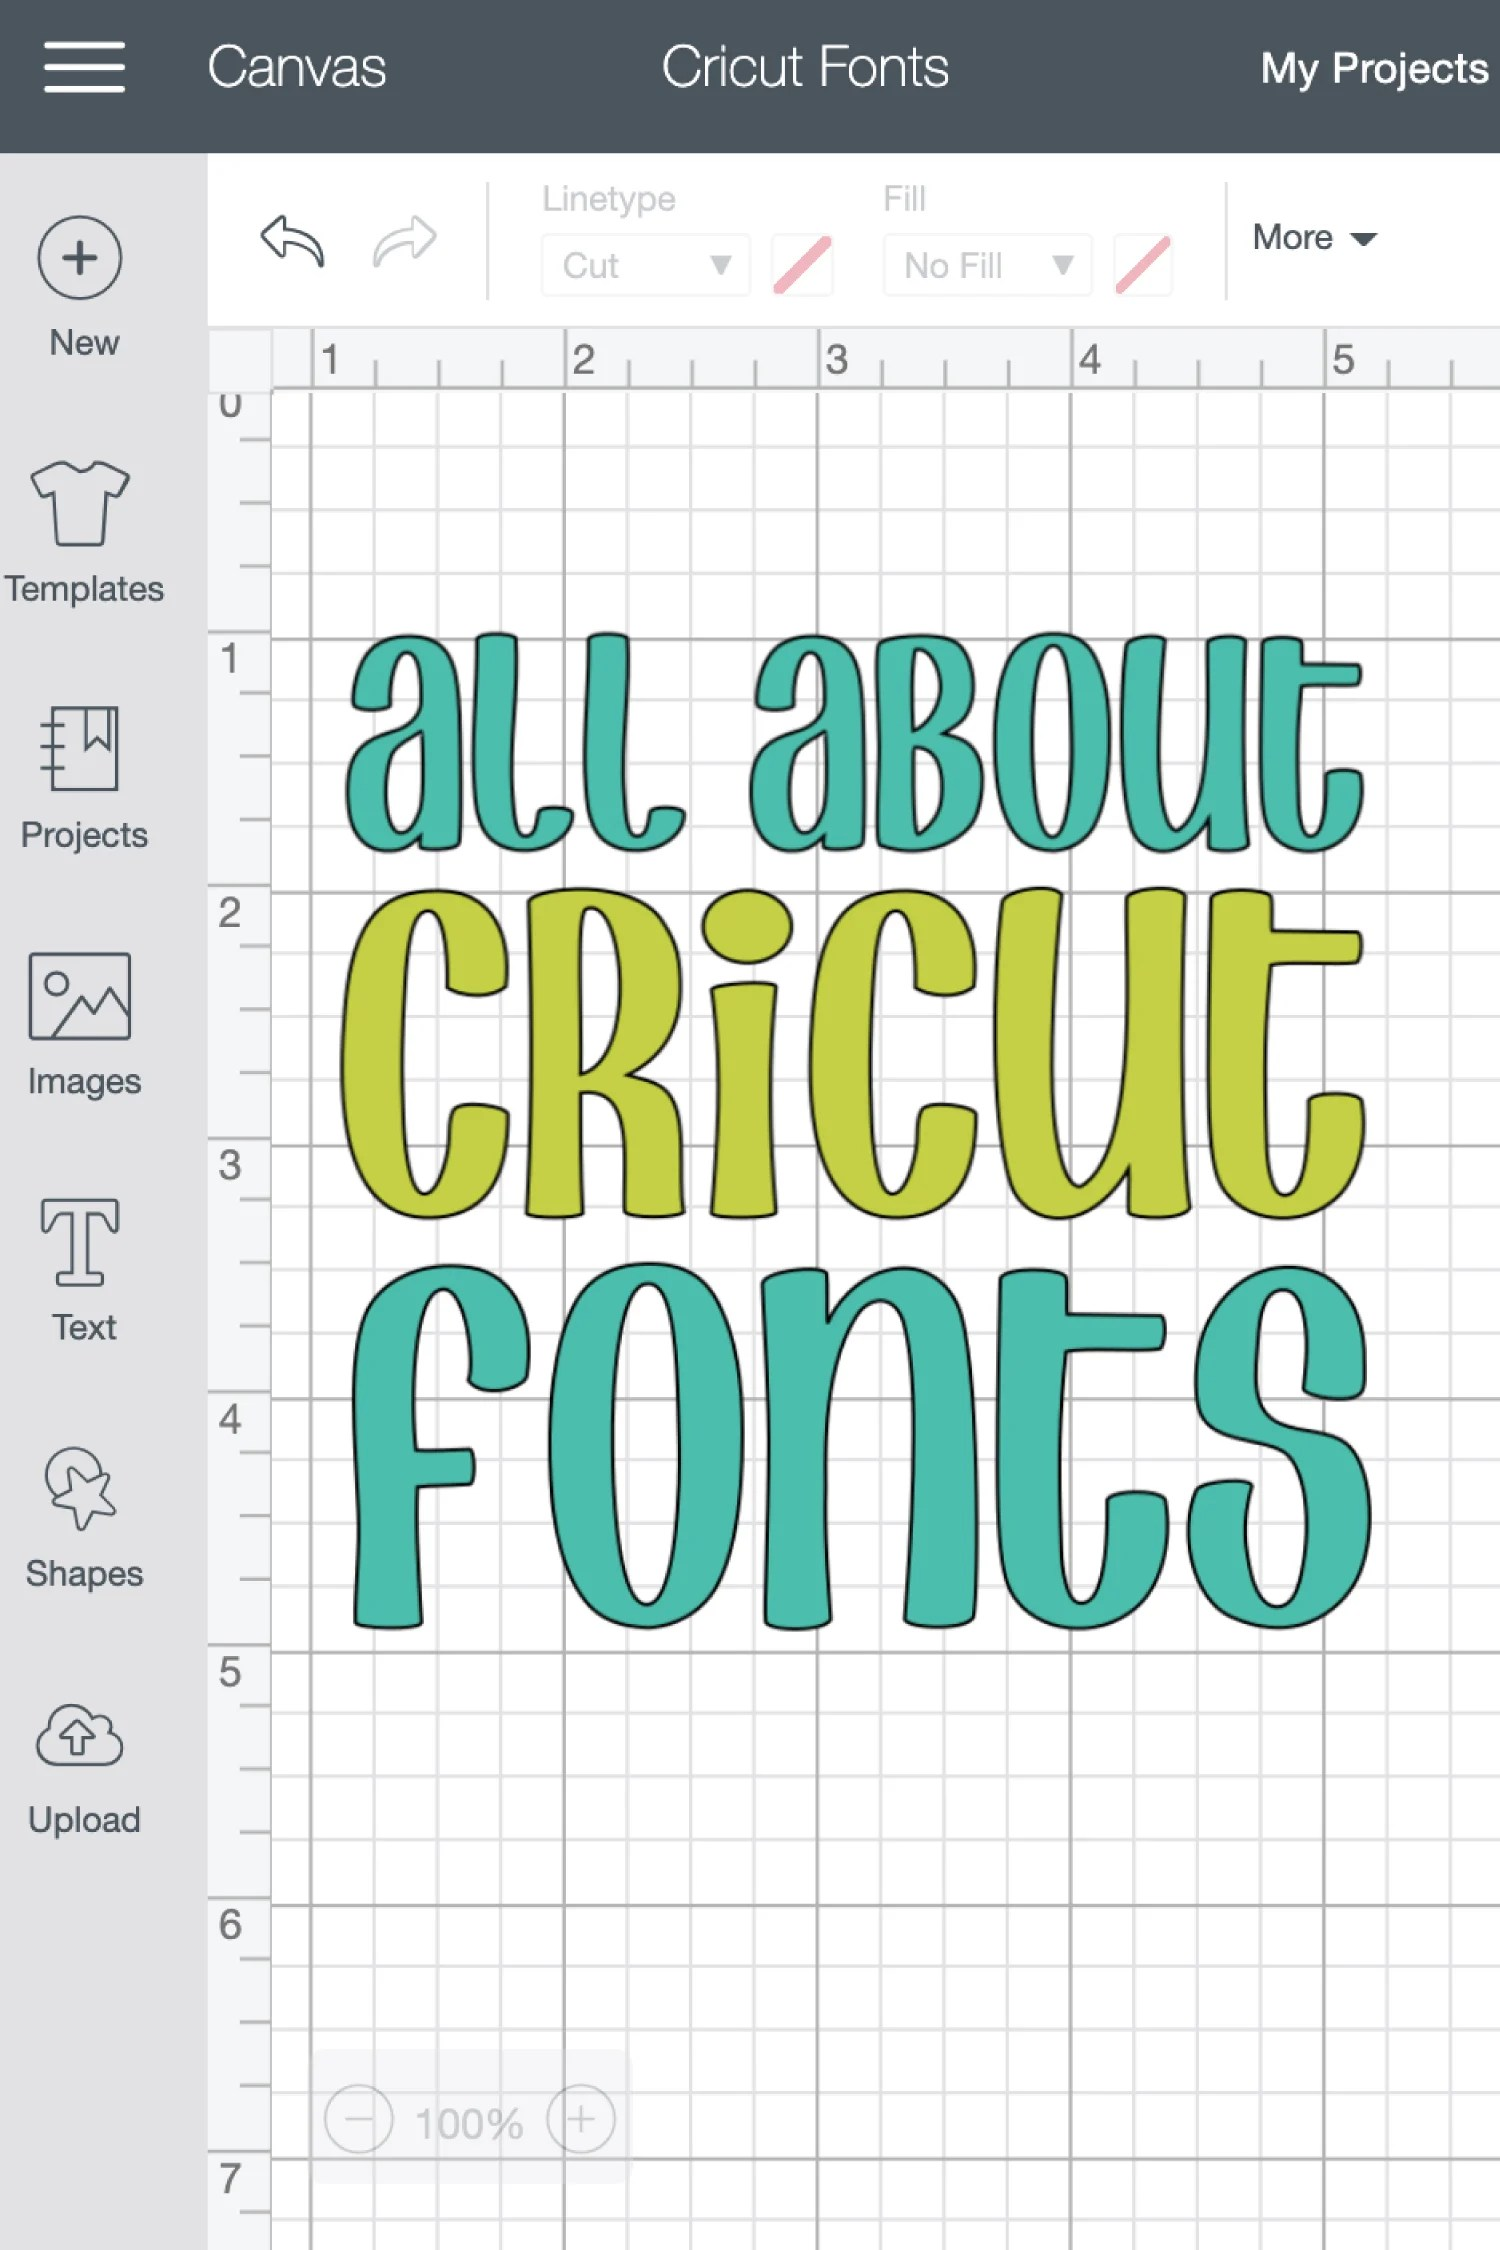 Fonts in Cricut Design Space are not as straightforward as you'd think! Why are your letters all spaced out? Why are all your letters cutting separately? Check out these font basics in the Cricut Design Space!